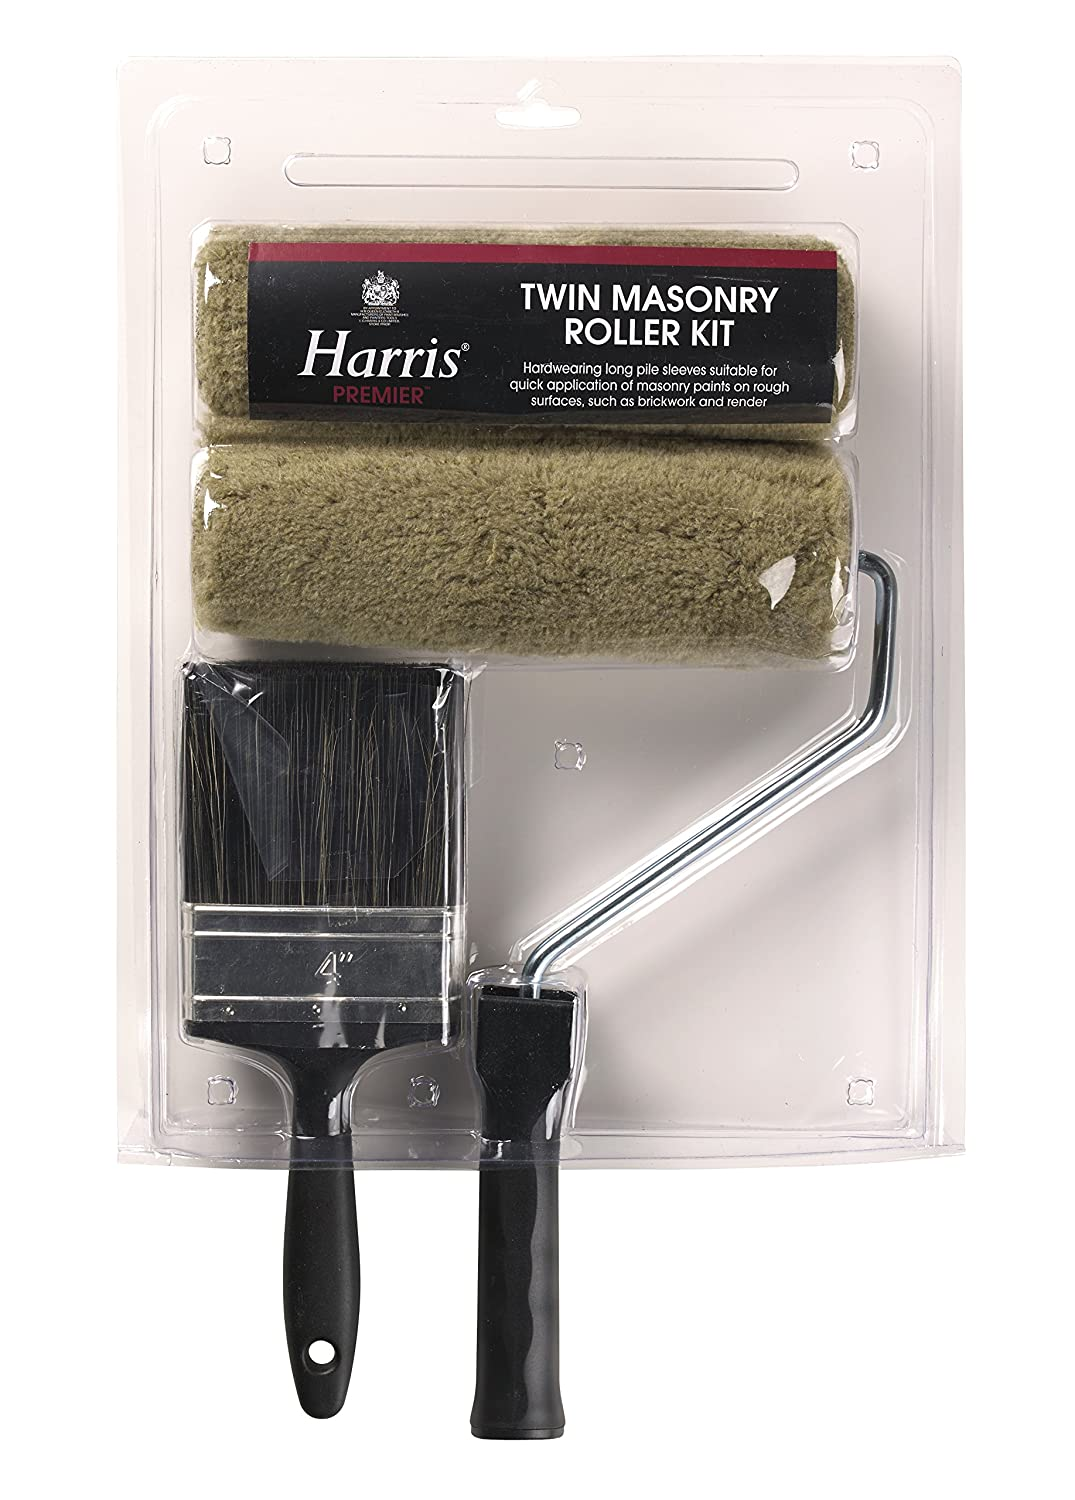 Harris 4291 9 x 1.75-Inch Masonry Roller Kit with 4-Inch Brush LG Harris